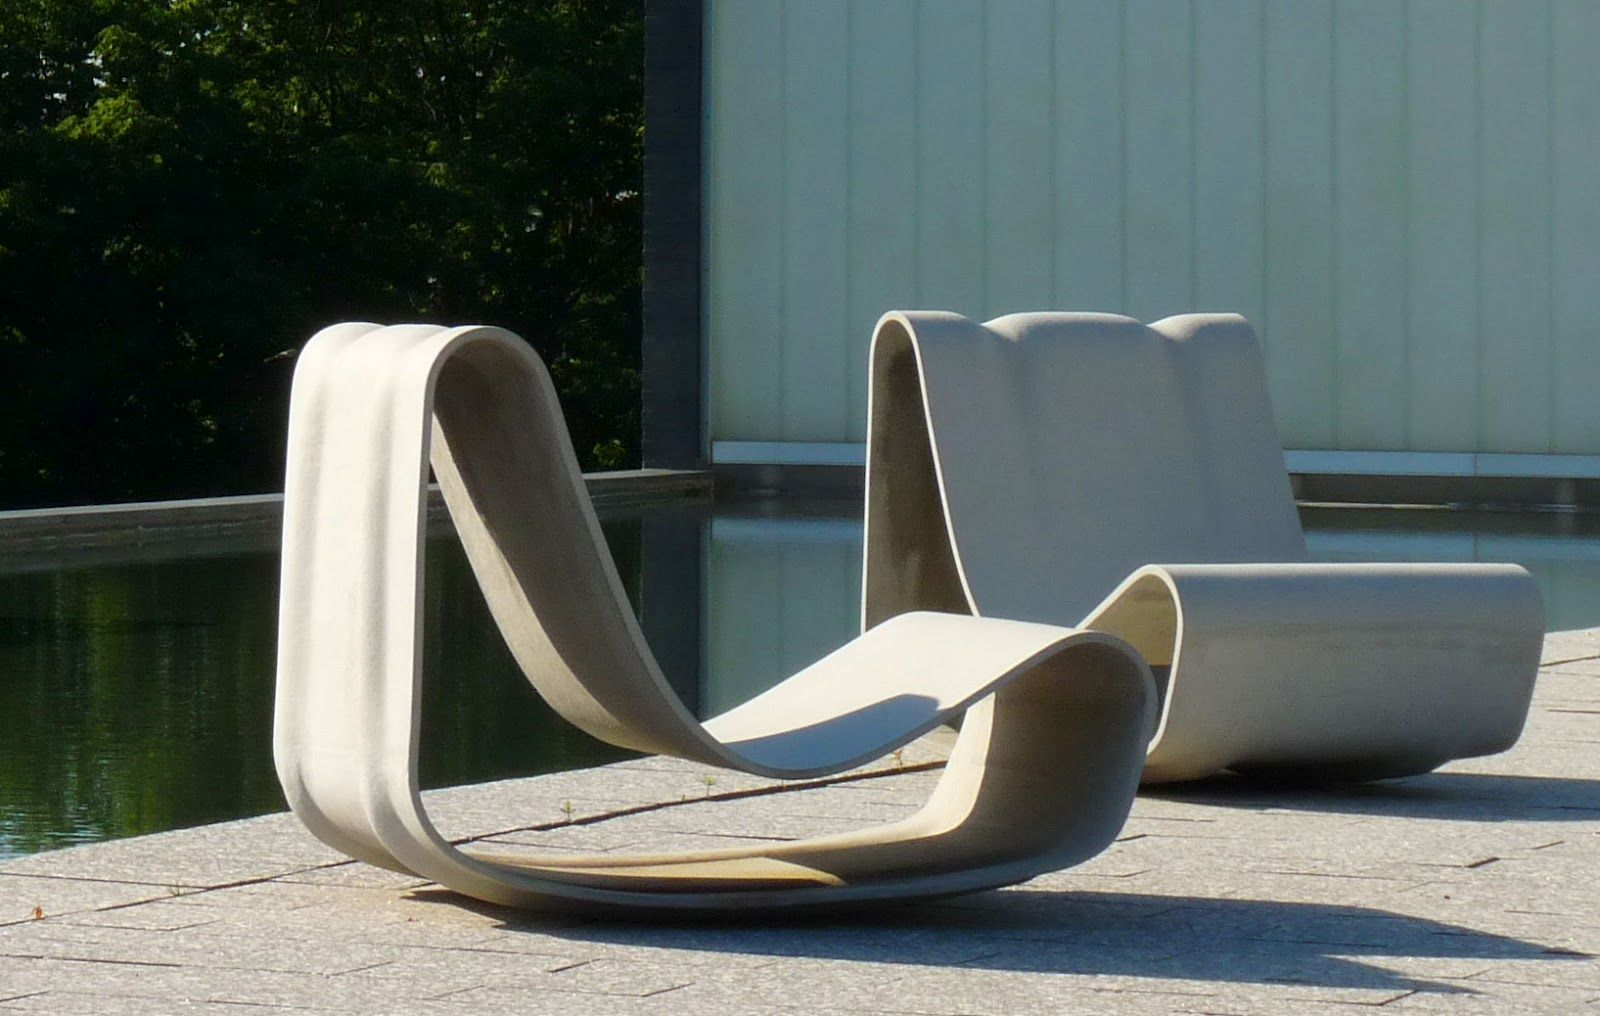 Small patio furniture modern outdoor furniture concrete furniture furniture ideas contemporary furniture